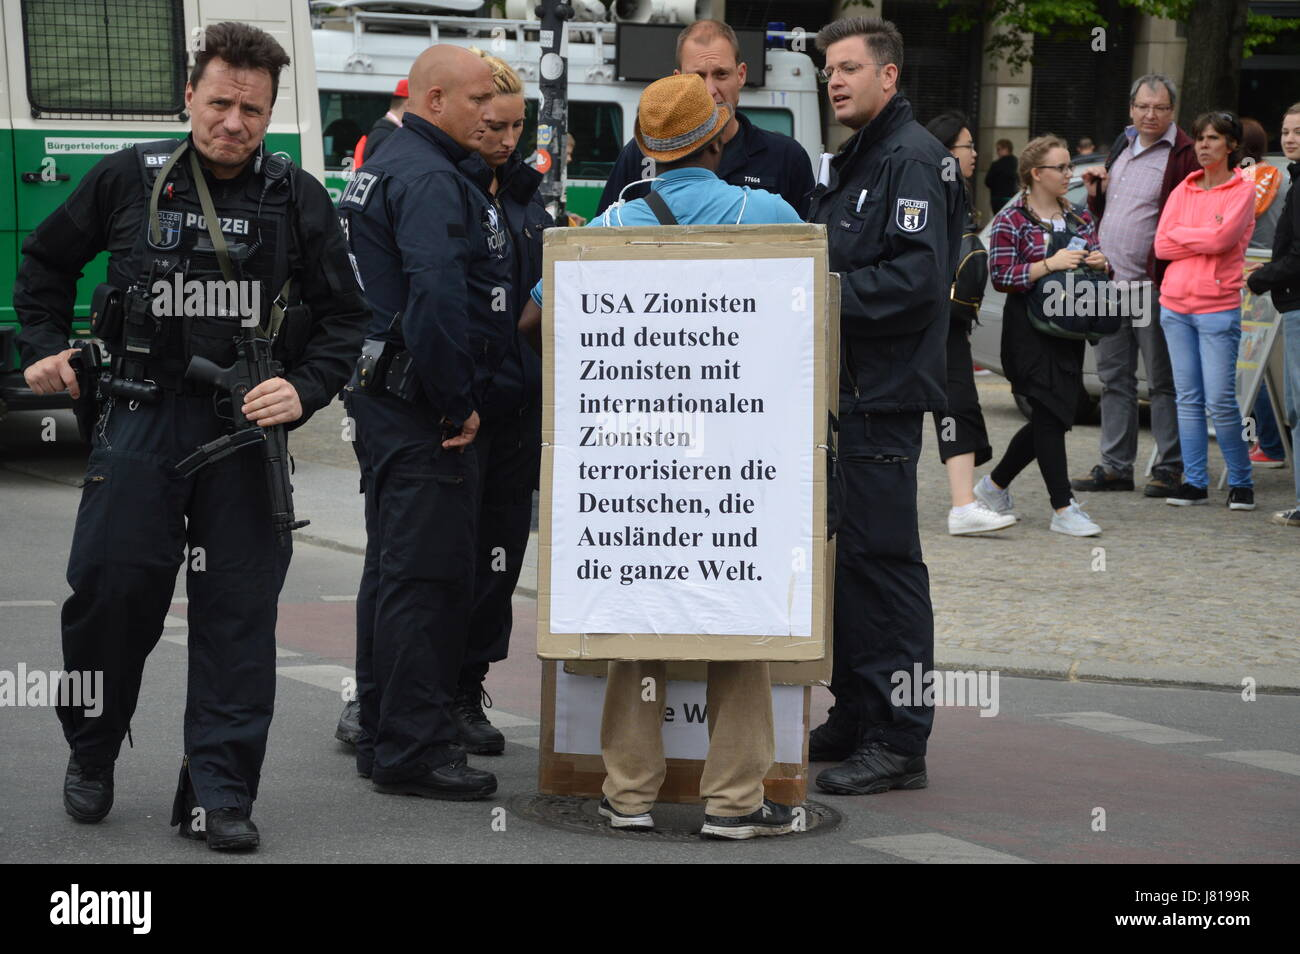 Berlin, Germany. 25th May, 2017. Anti-Zionist demonstrator at Unter den Linden in Berlin, Germany Credit: Markku - Stock Image